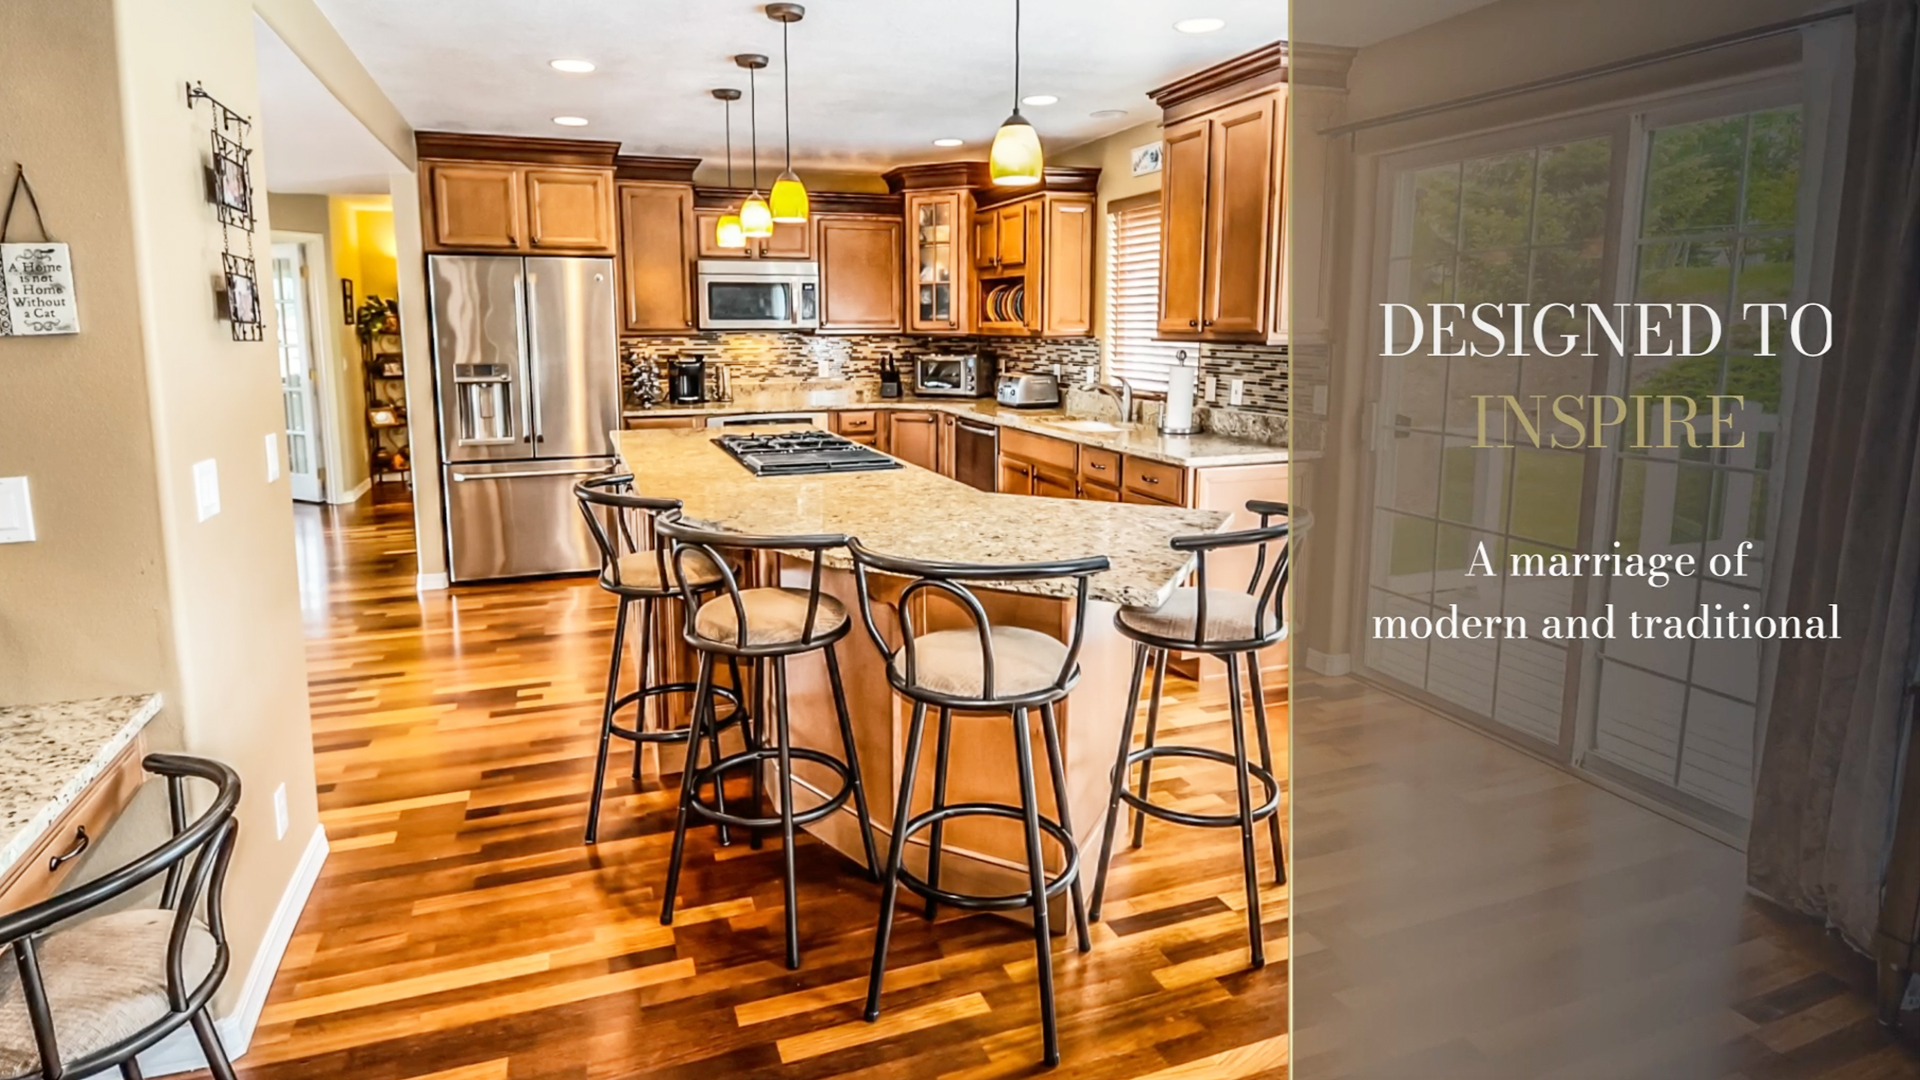 Beautiful kitchen with a side bar text overlay which read DESIGNED TO INSPIRE - A marriage of modern and traditional